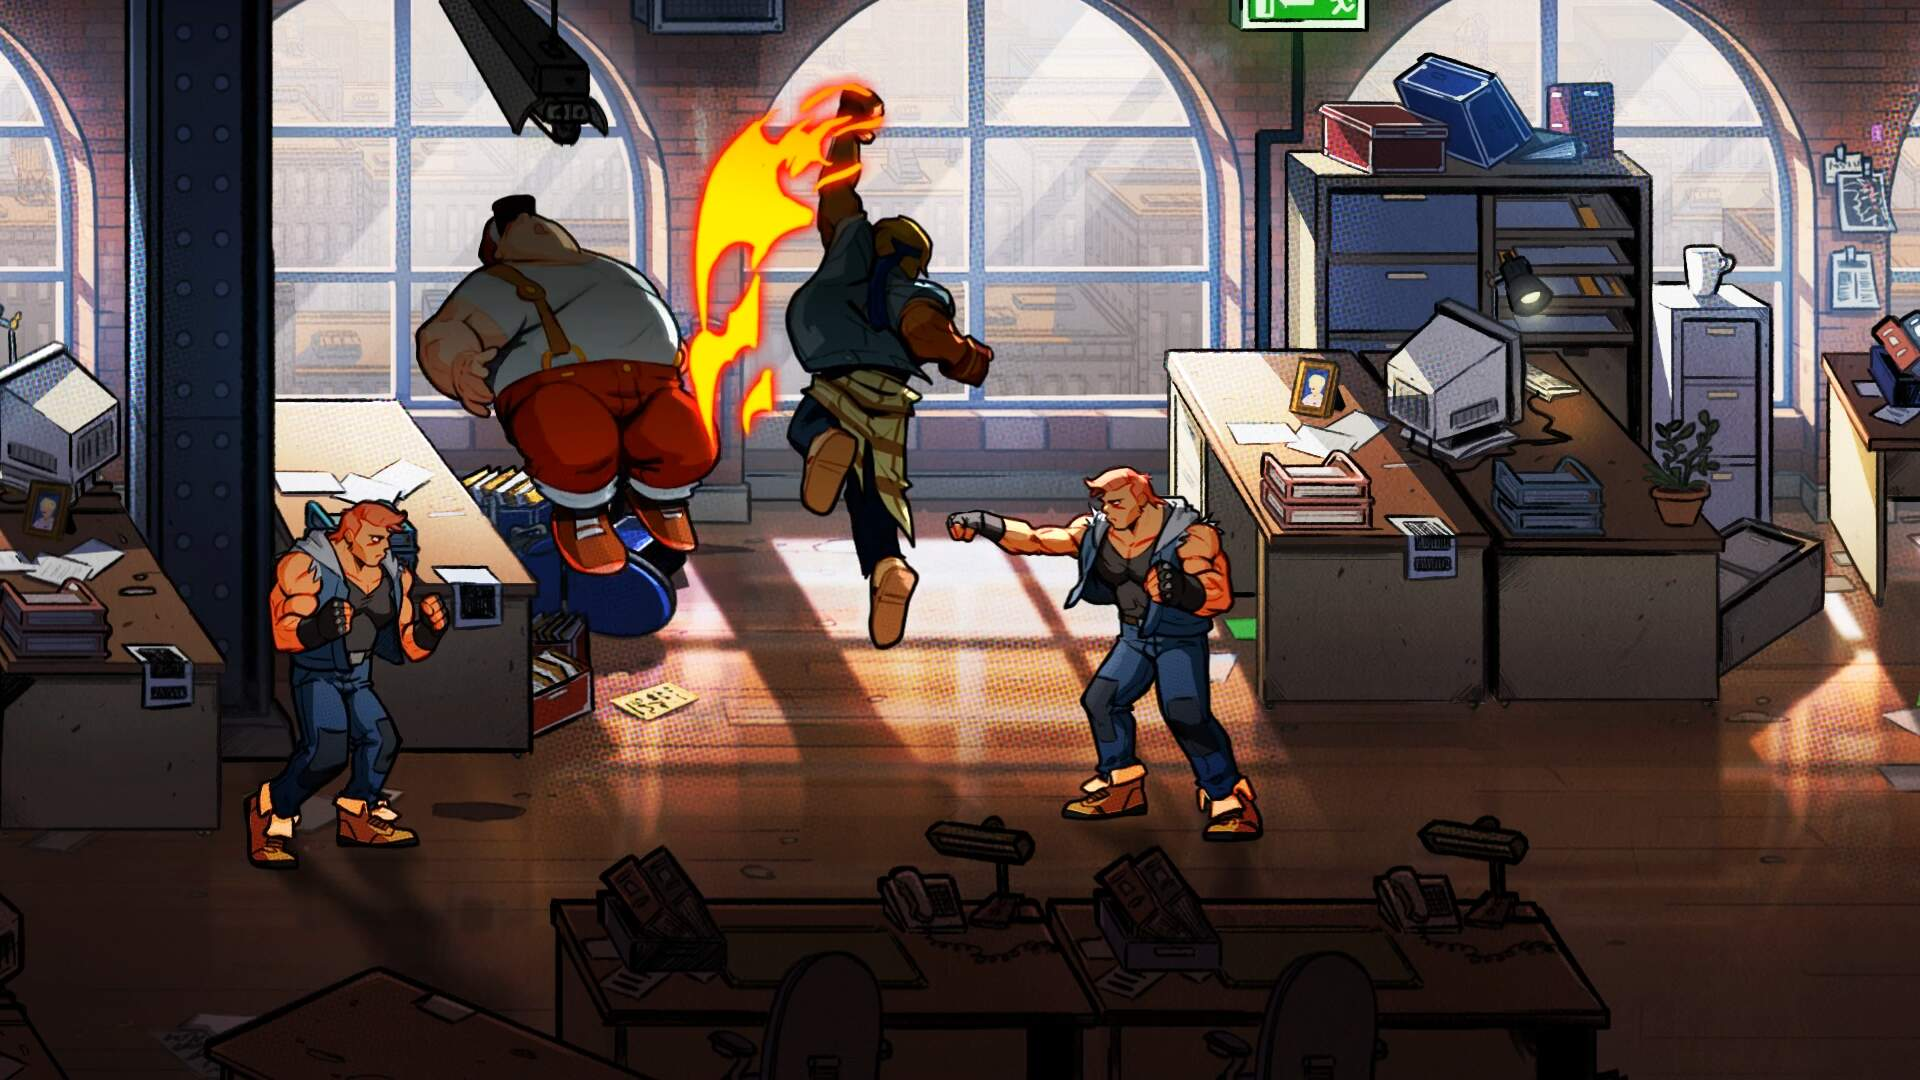 Streets of Rage 4 is Looking Hot in the First Gameplay Trailer